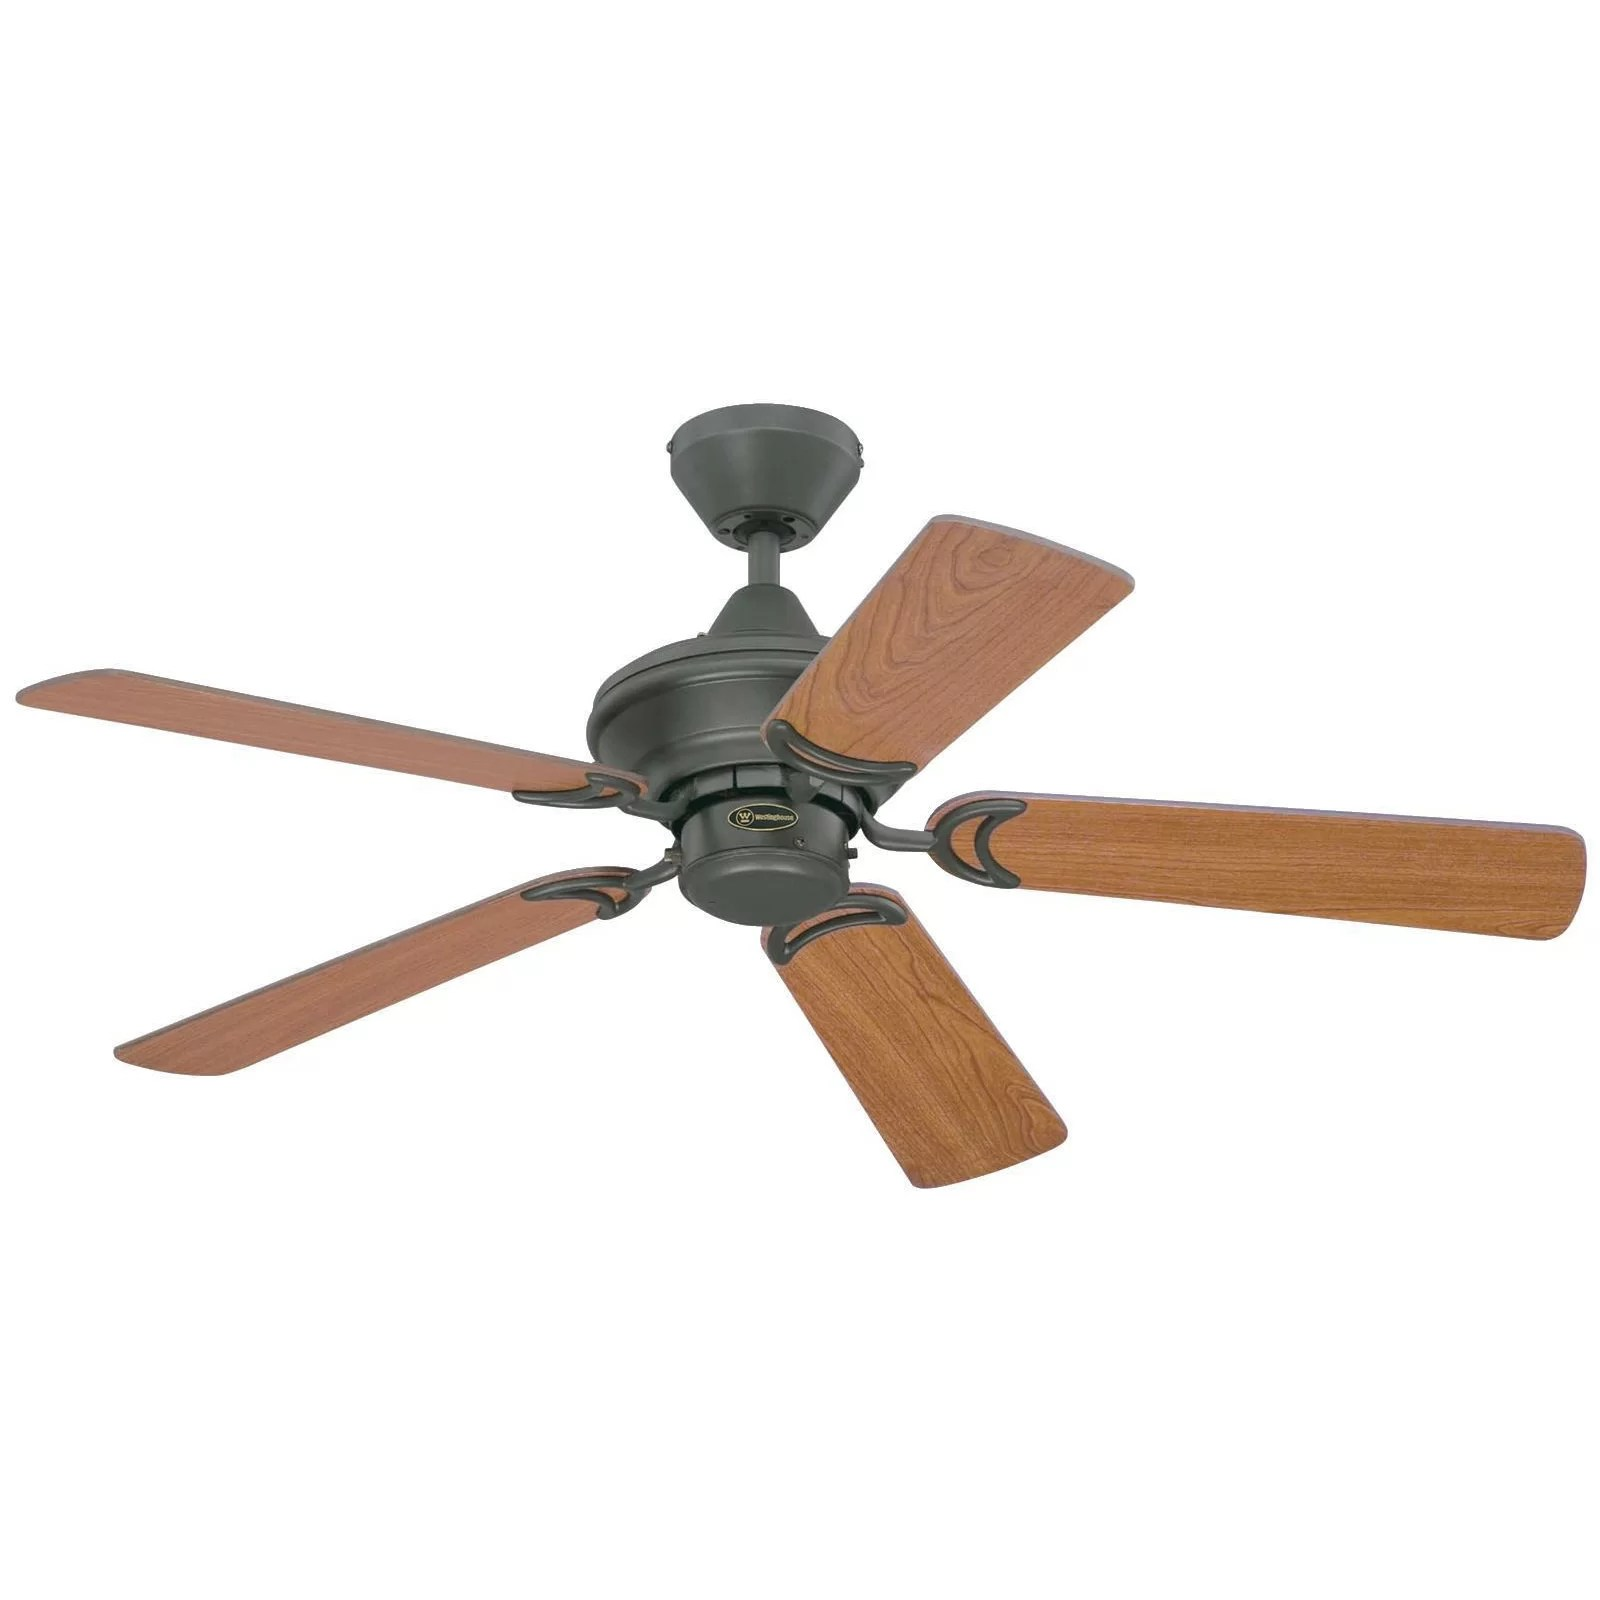 Childrens Ceiling Fans Westinghouse 105cm Nevada 5 Blade Ceiling Fan Wayfair Uk